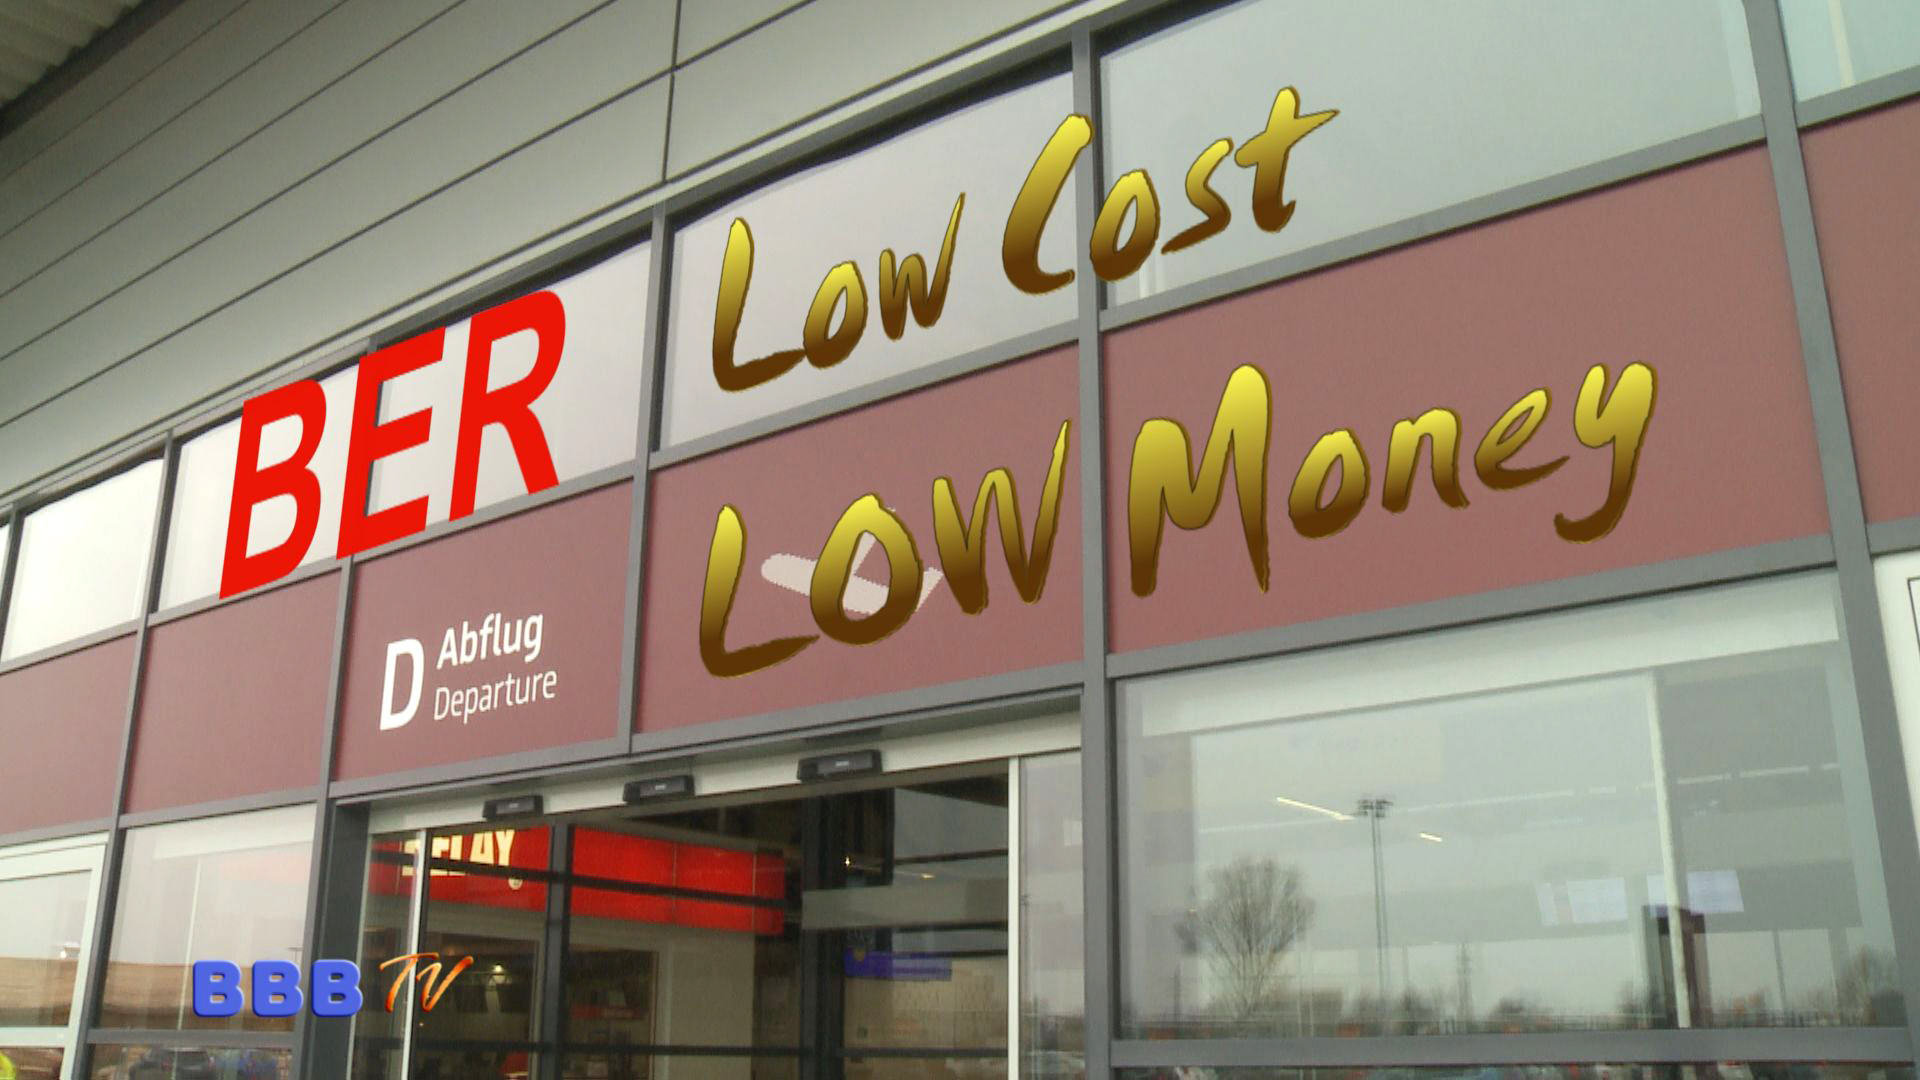 BER Low Cost Low Money